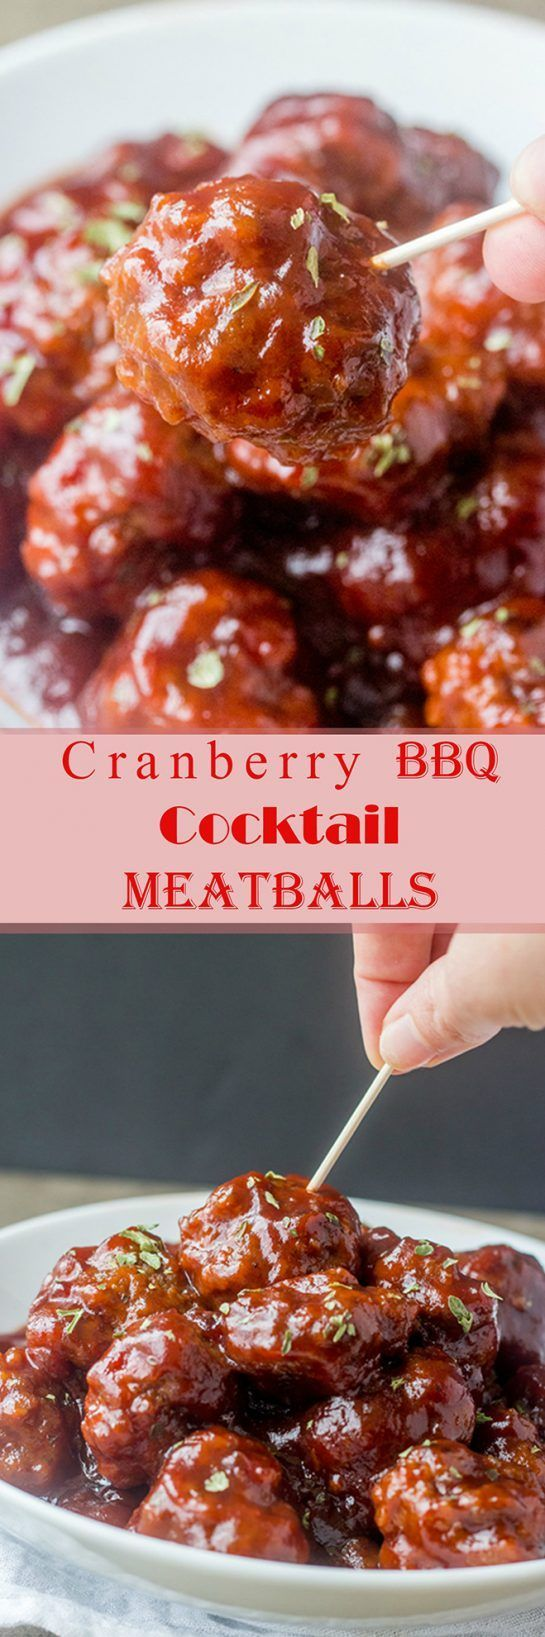 This sweet and tangy Cranberry BBQ Cocktail Meatballs recipe is fitting for an easy holiday appetizer or make it into a meal served over rice! These would be a hit for parties, Christmas Eve, Christmas Day, or New Year's Eve. @moyerbeef #ad #appetizer #holiday #beef